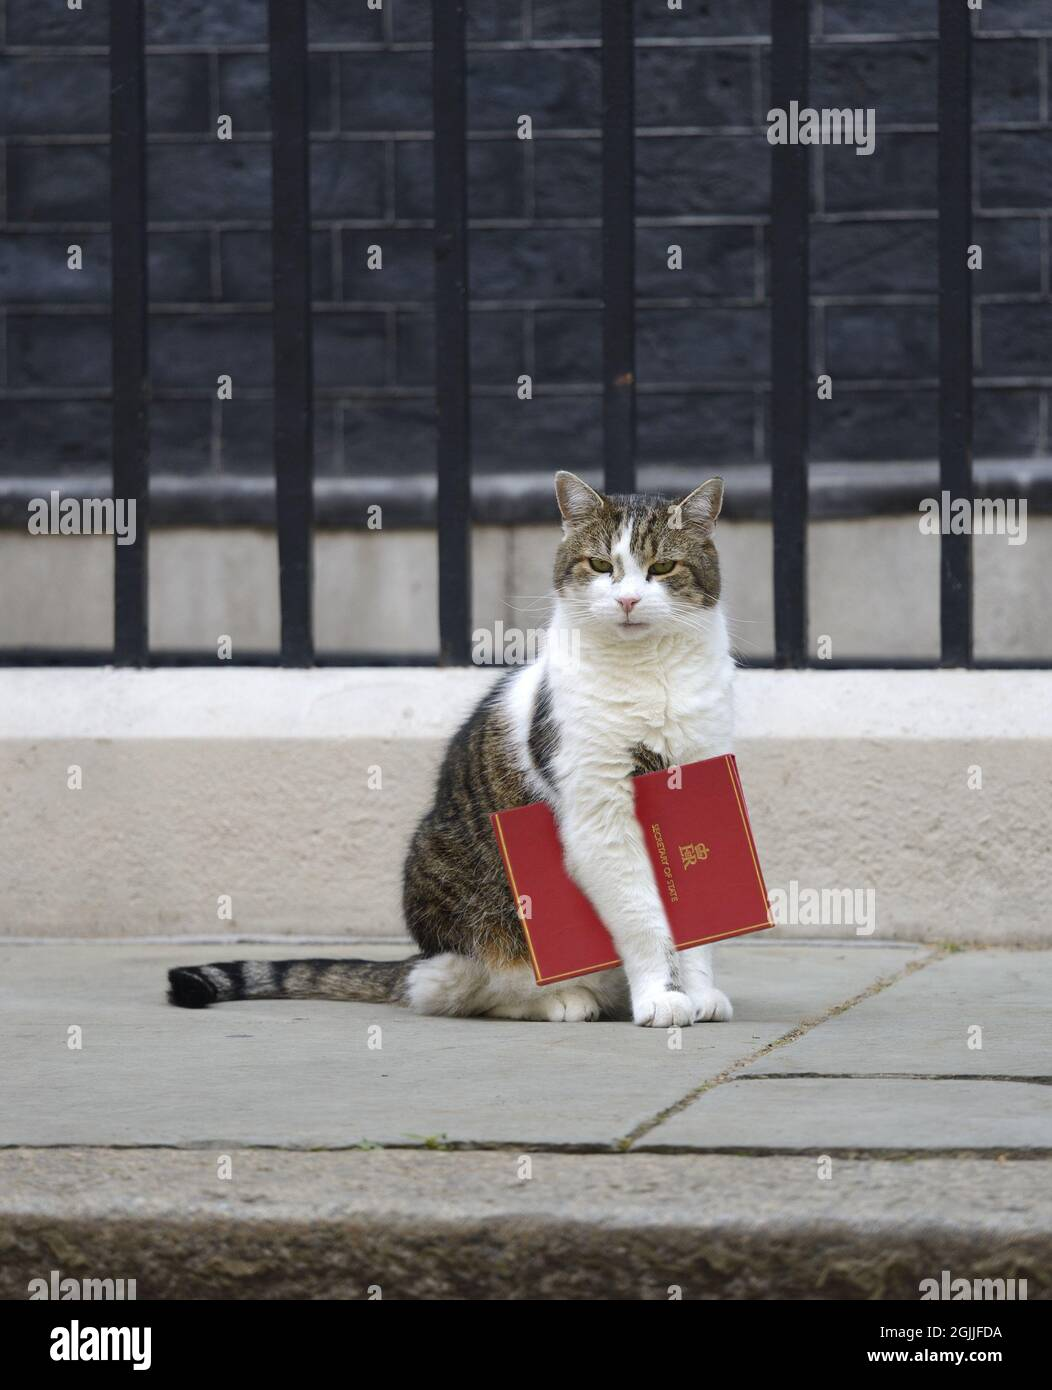 Larry the Cat - Chief Mouser to the Cabinet Office since 2011 - carrying official government papers in Downing Street. [MAY BE DIGITALLY EDITED] Stock Photo